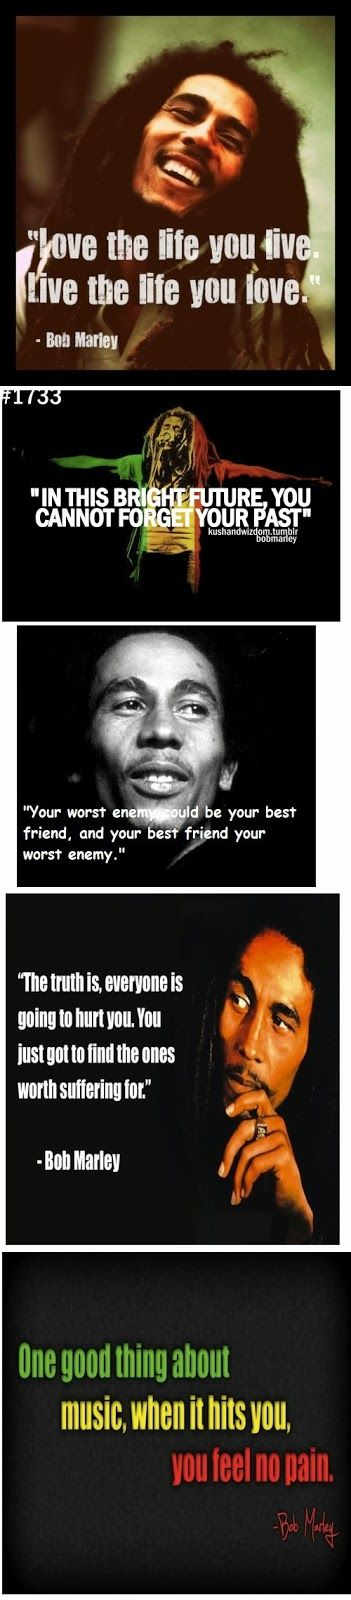 Five Inspirational and up lifting quotes by Bob Marley